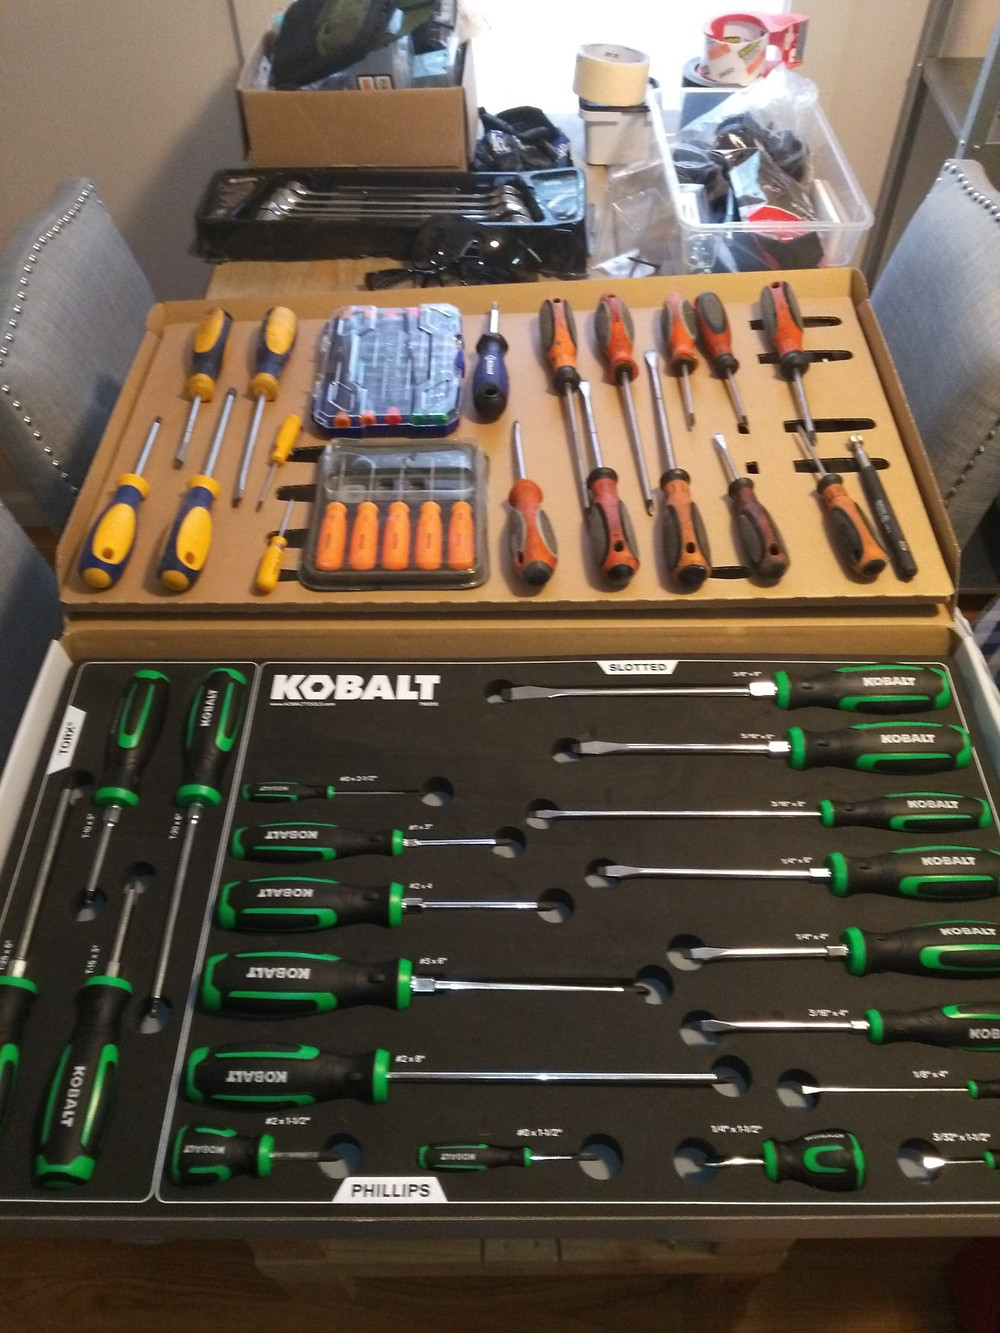 Kobalt 20-Piece Screwdriver Set